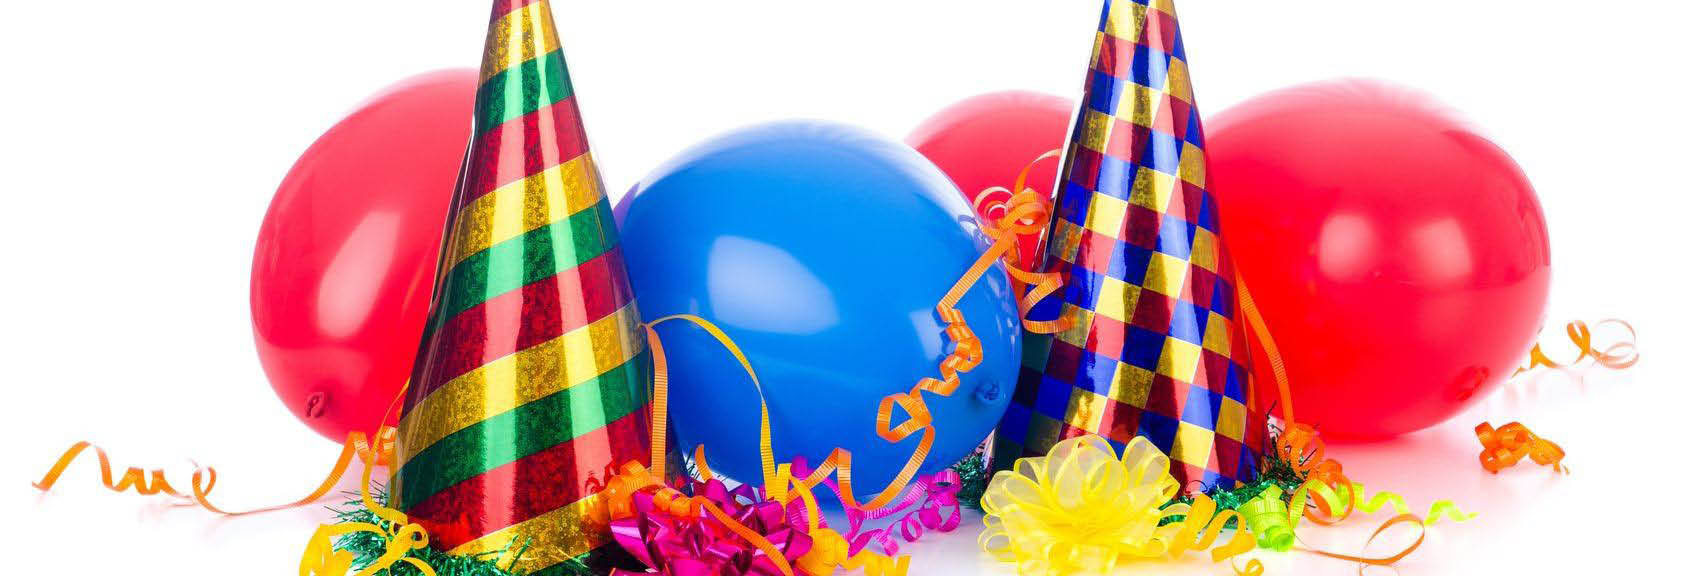 balloons,party supplies,invitations,table rentals,chair rentals,holiday decorations